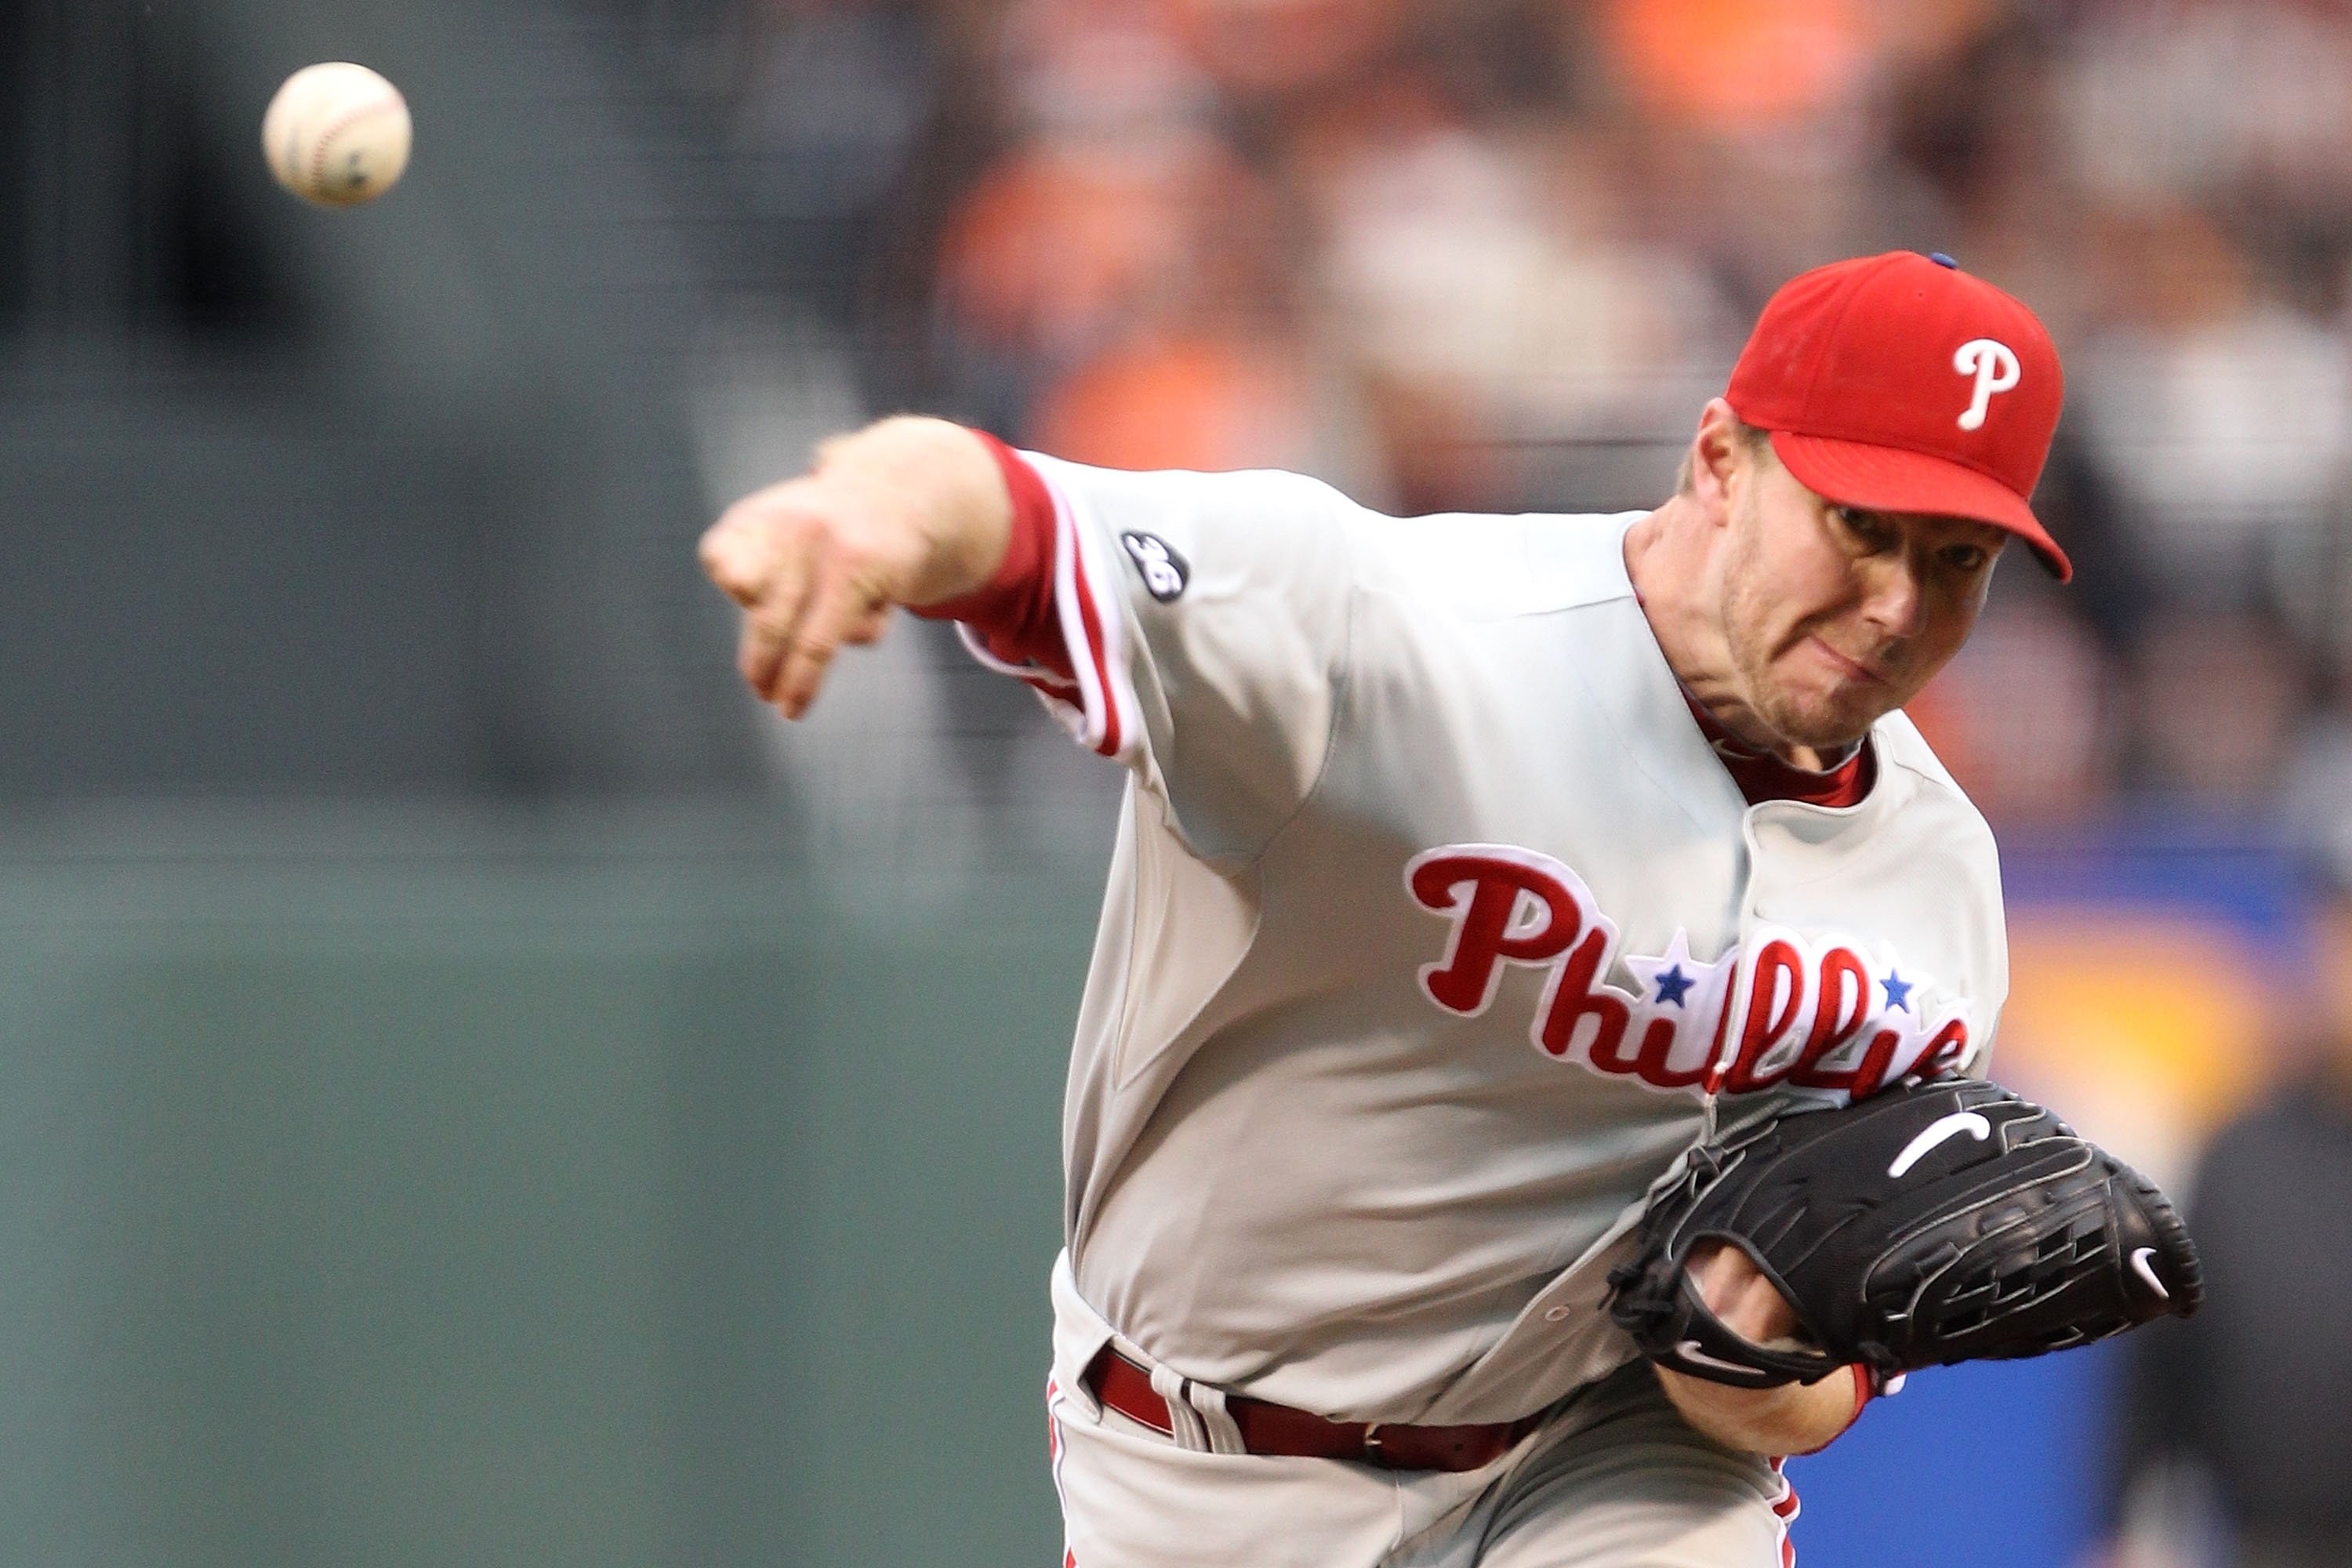 SAN FRANCISCO - OCTOBER 21:  Roy Halladay #34 of the Philadelphia Phillies pitches in the first inning against the San Francisco Giants in Game Five of the NLCS during the 2010 MLB Playoffs at AT&T Park on October 21, 2010 in San Francisco, California.  (